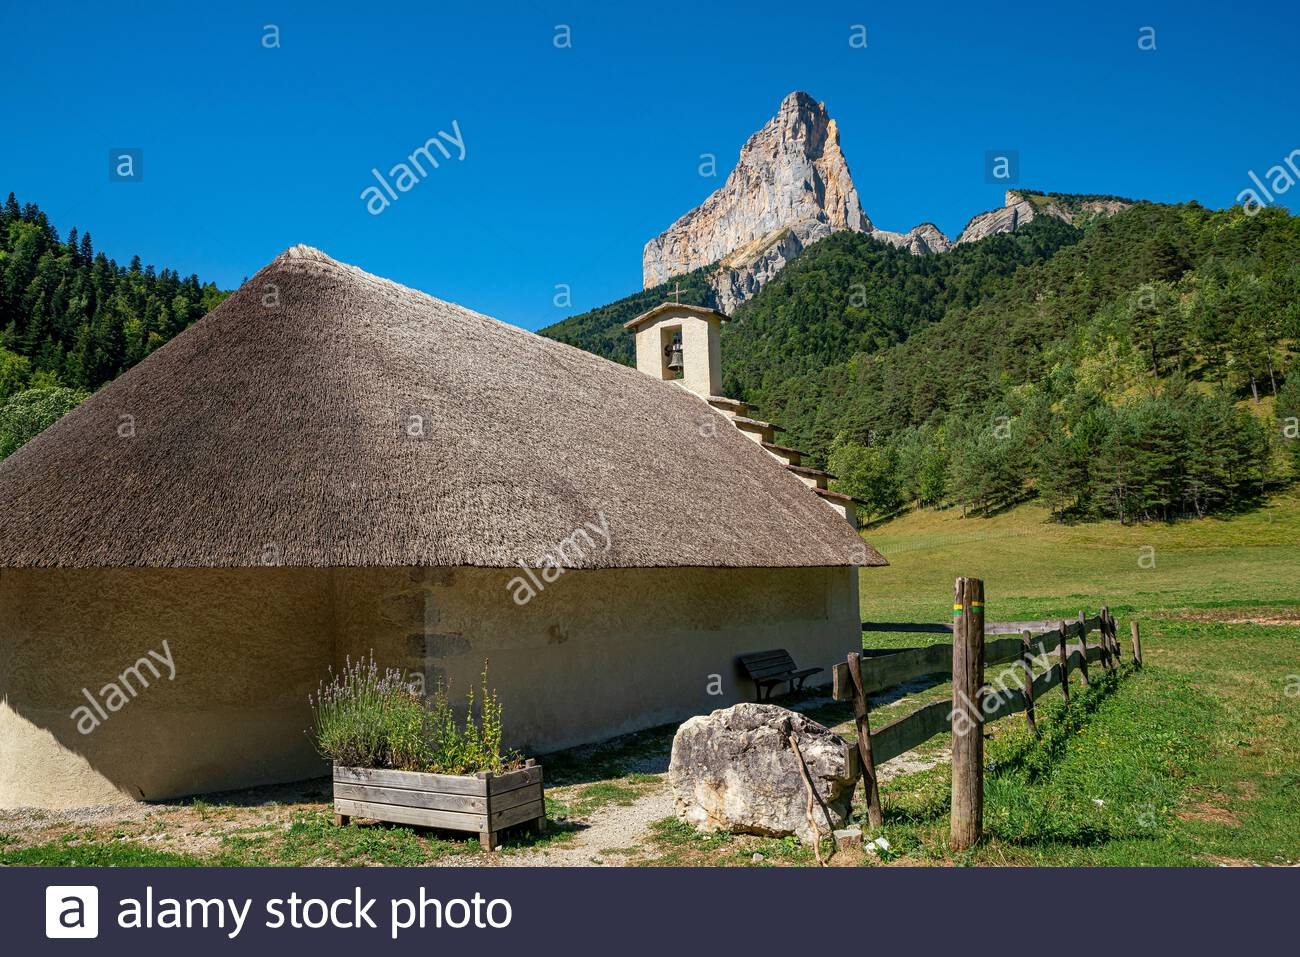 trzanne-thatched-roof-romanesque-chapel-